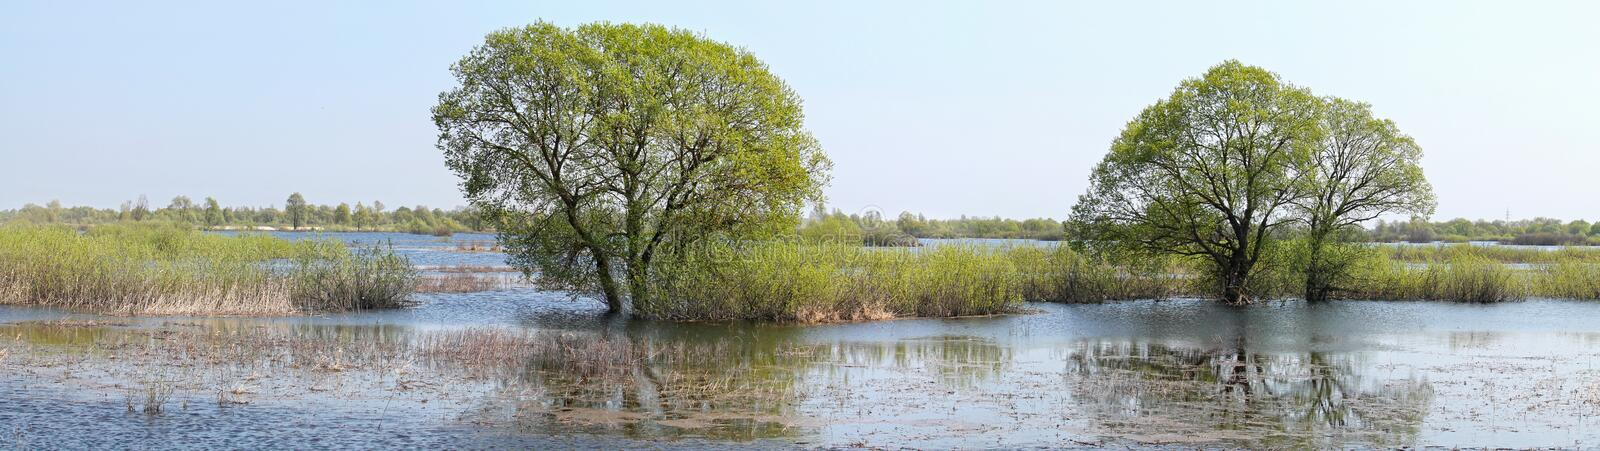 Trees in water. Panoramic landscape with spring flooding of Pripyat River near Turov, Belarus. Trees in water. Panoramic landscape with spring flooding of the stock photo